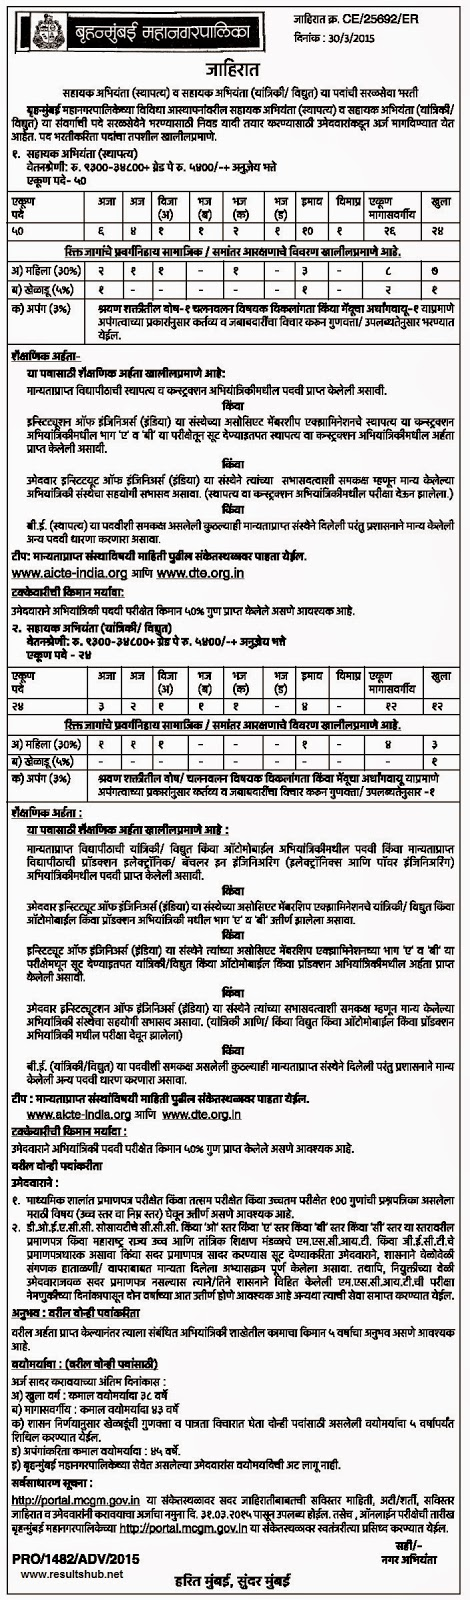 Brihan Mumbai Recruitment 2015 Details & Application Details in Marathi